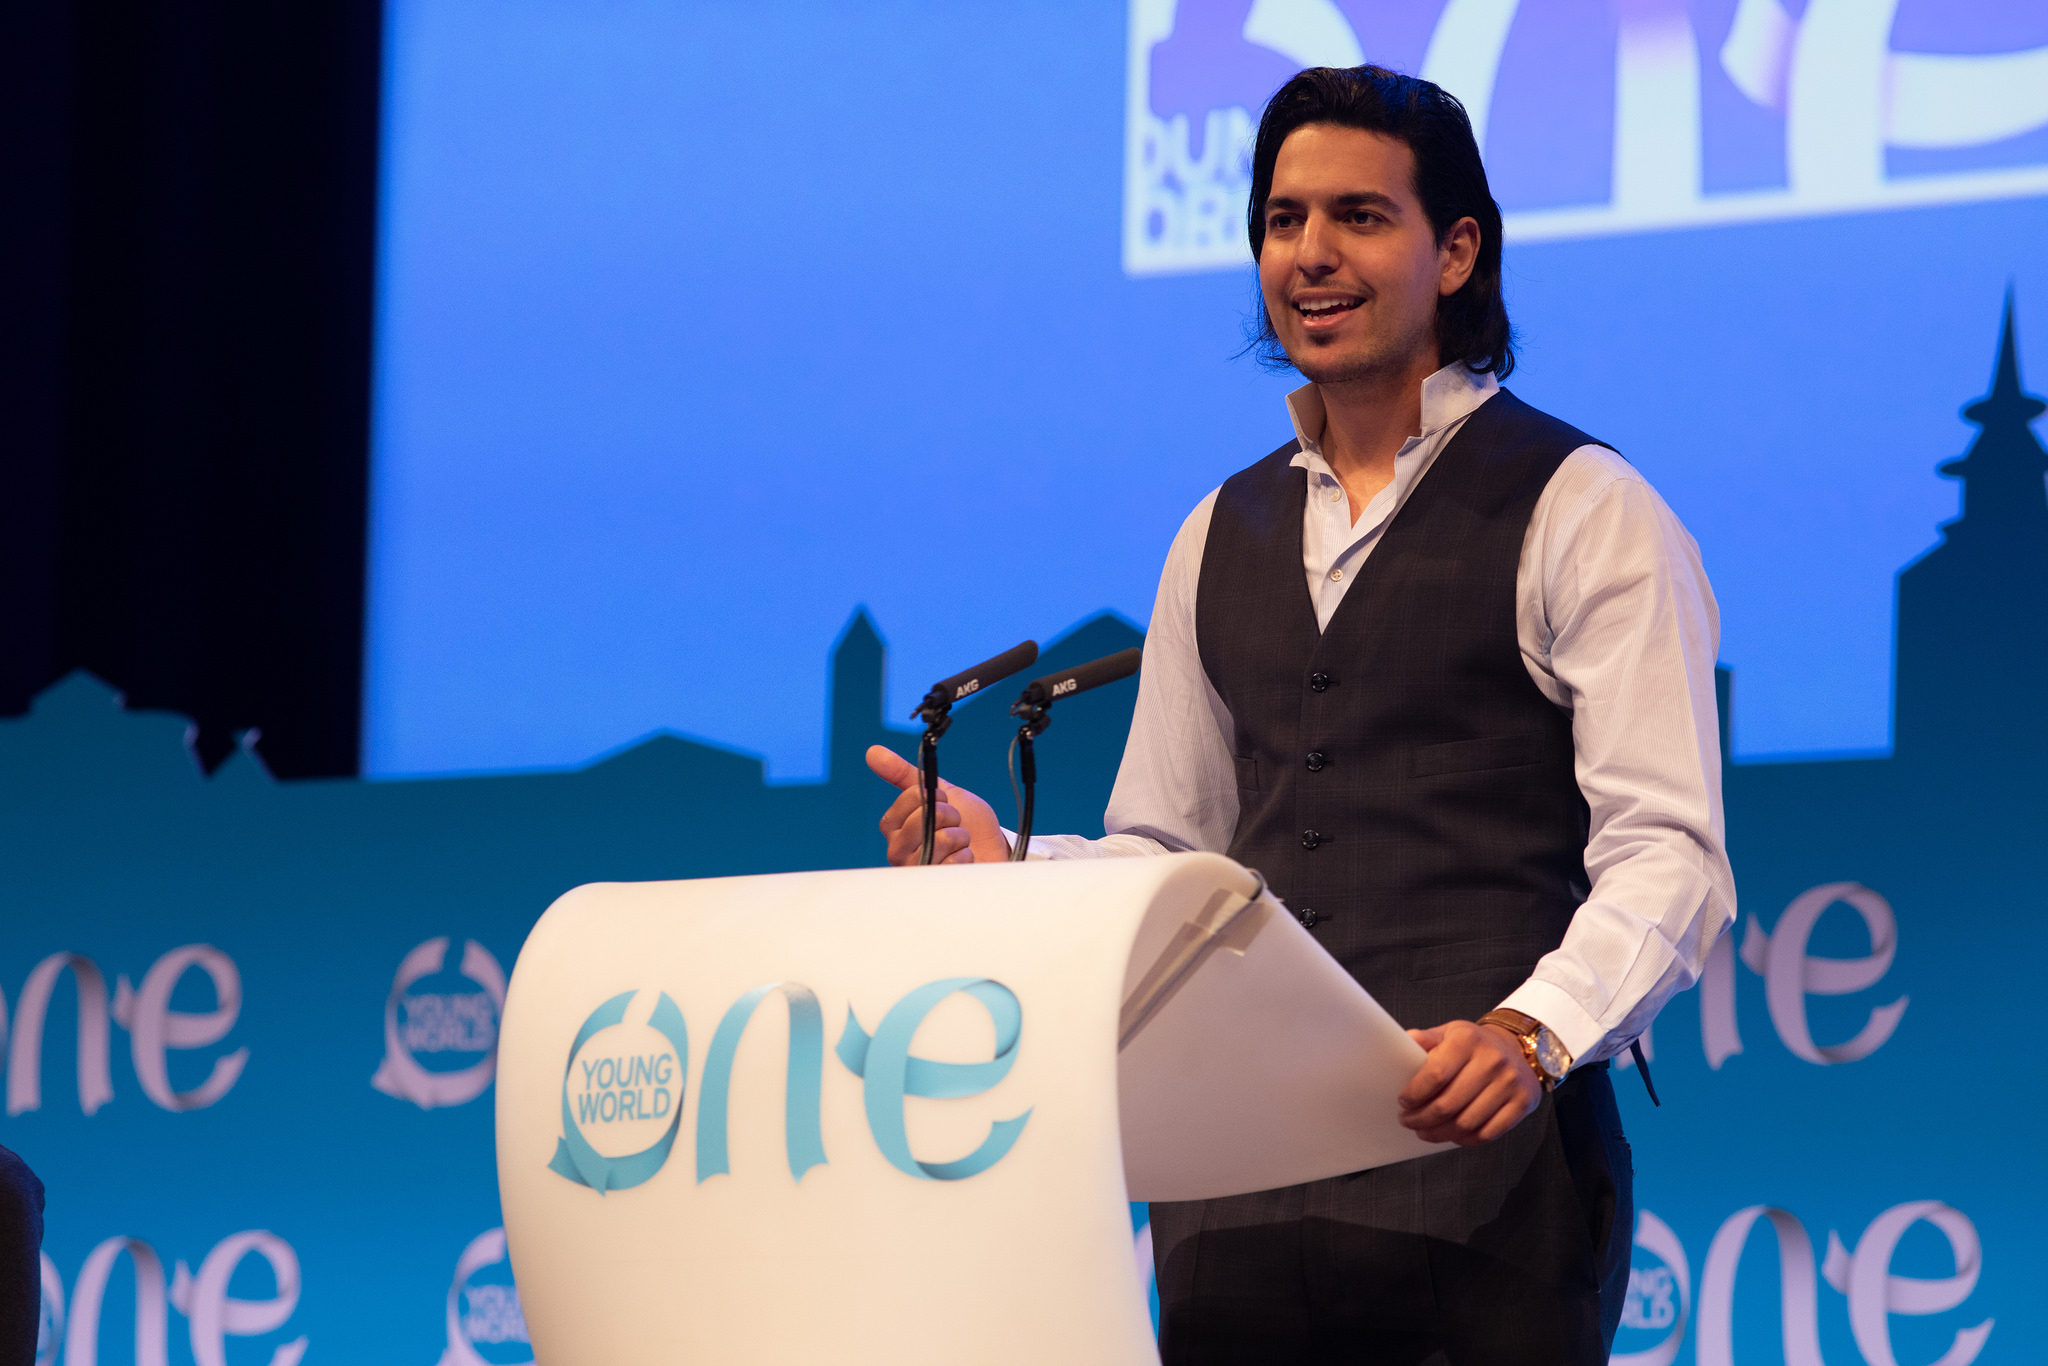 charif hamidi, oyw, one young world, brighton kaoma, prince harry, impact, leaders, young leaders